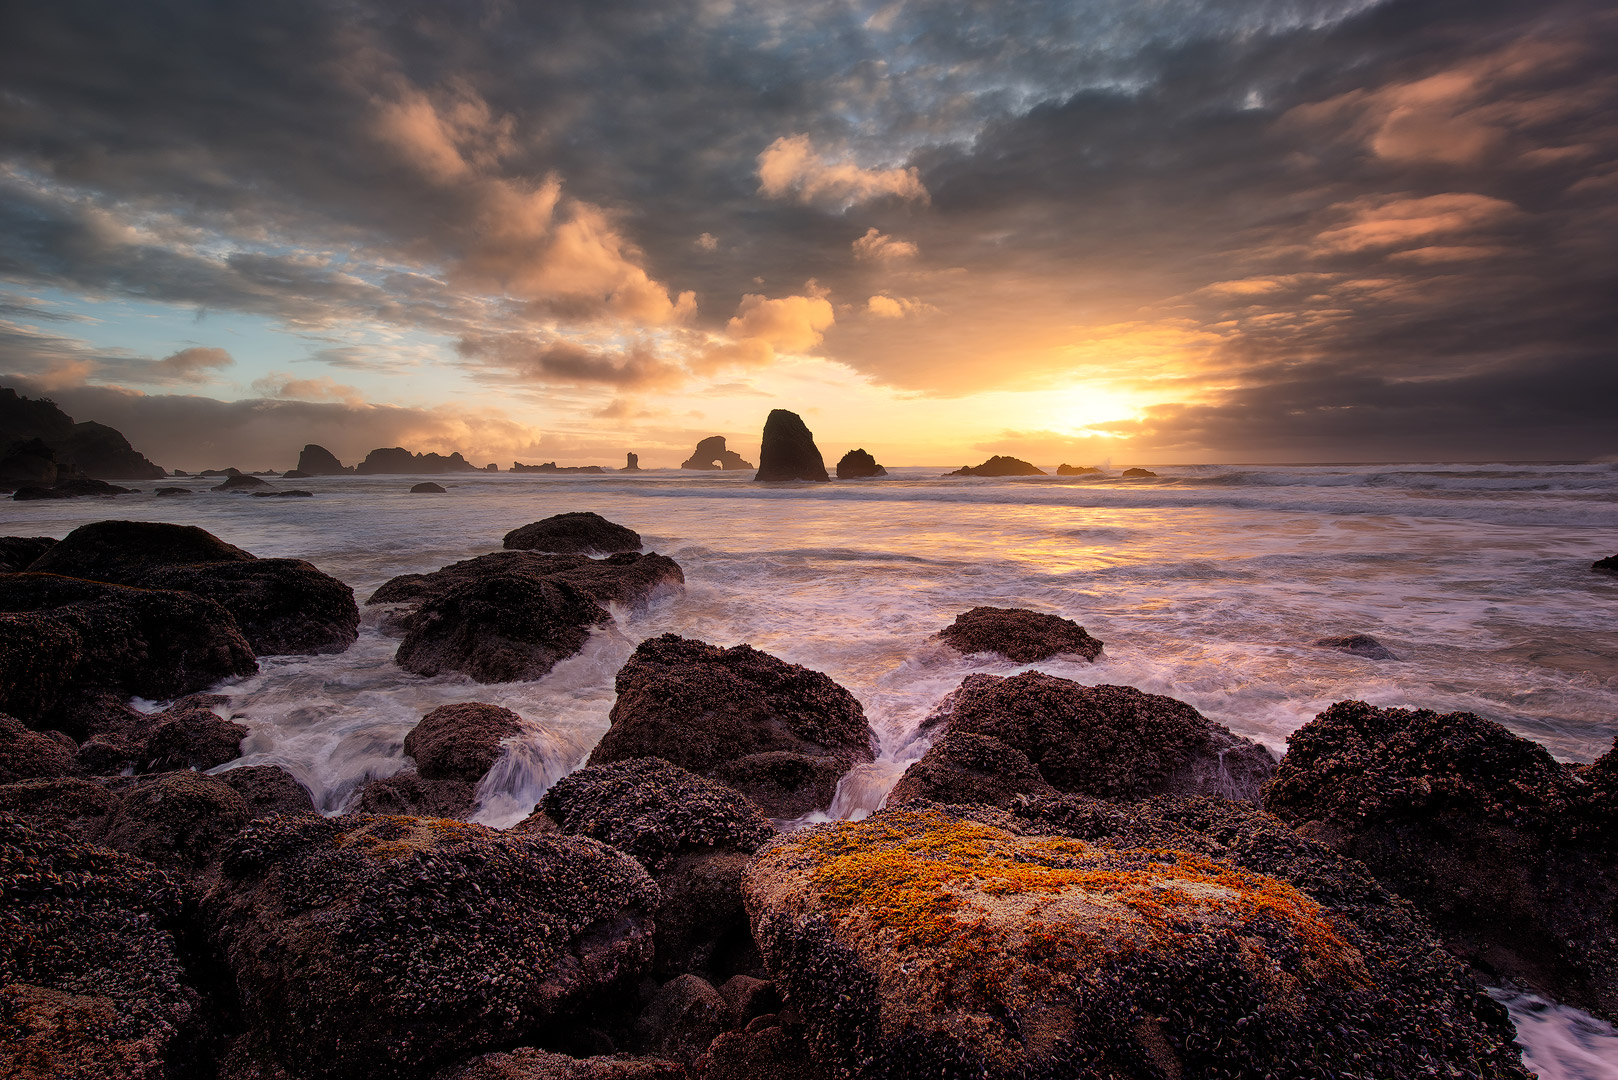 When Skies Speak, Indian Beach, Oregon, sunset, rocky, coastline, ocean, pacific ocean, bernard chen, timescapes, photo